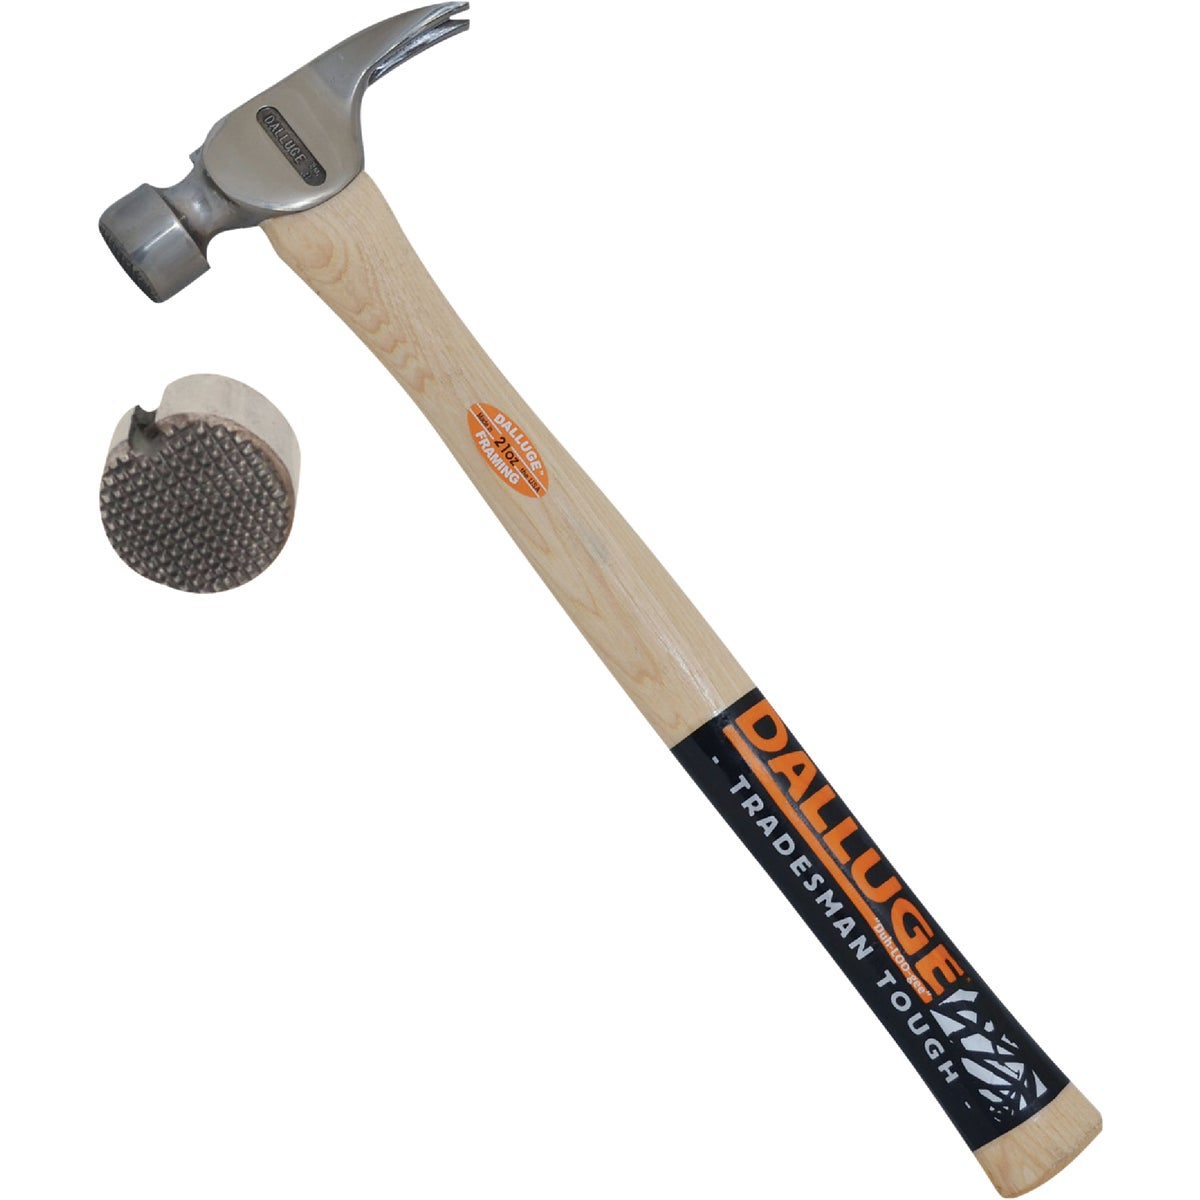 24OZ FRAMING HAMMER